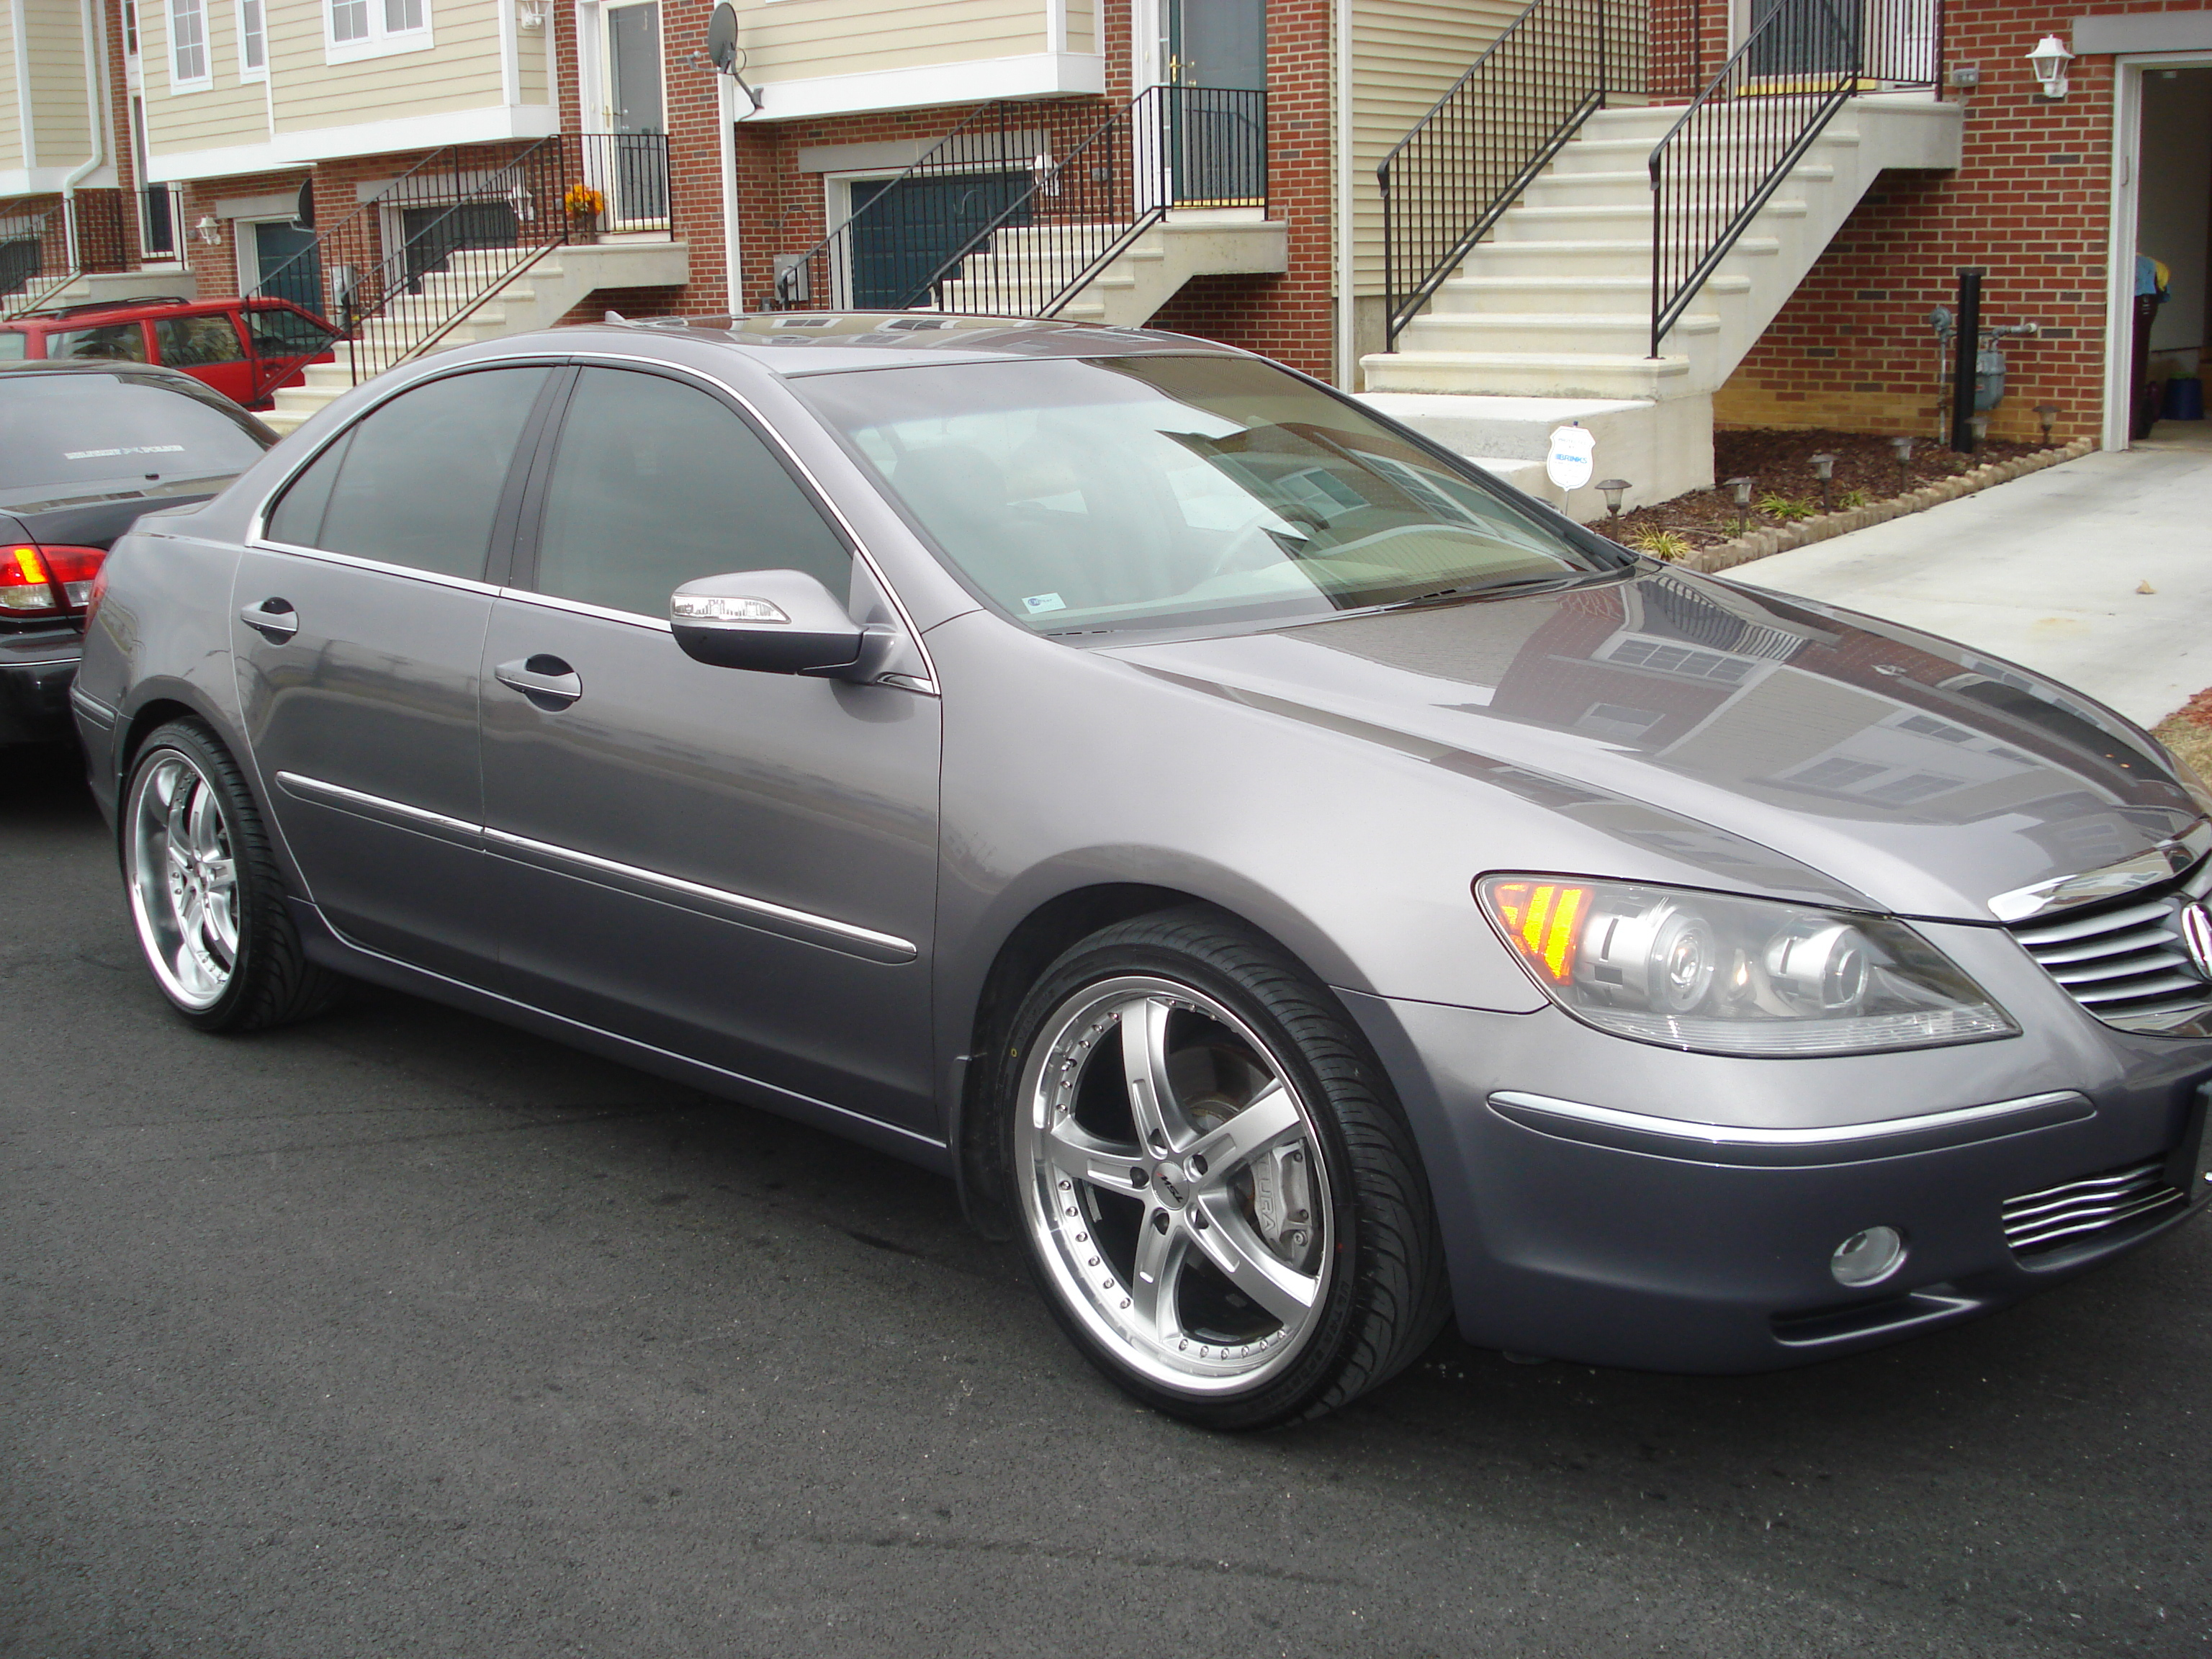 Wbessicks 2006 Acura RL Specs, Photos, Modification Info